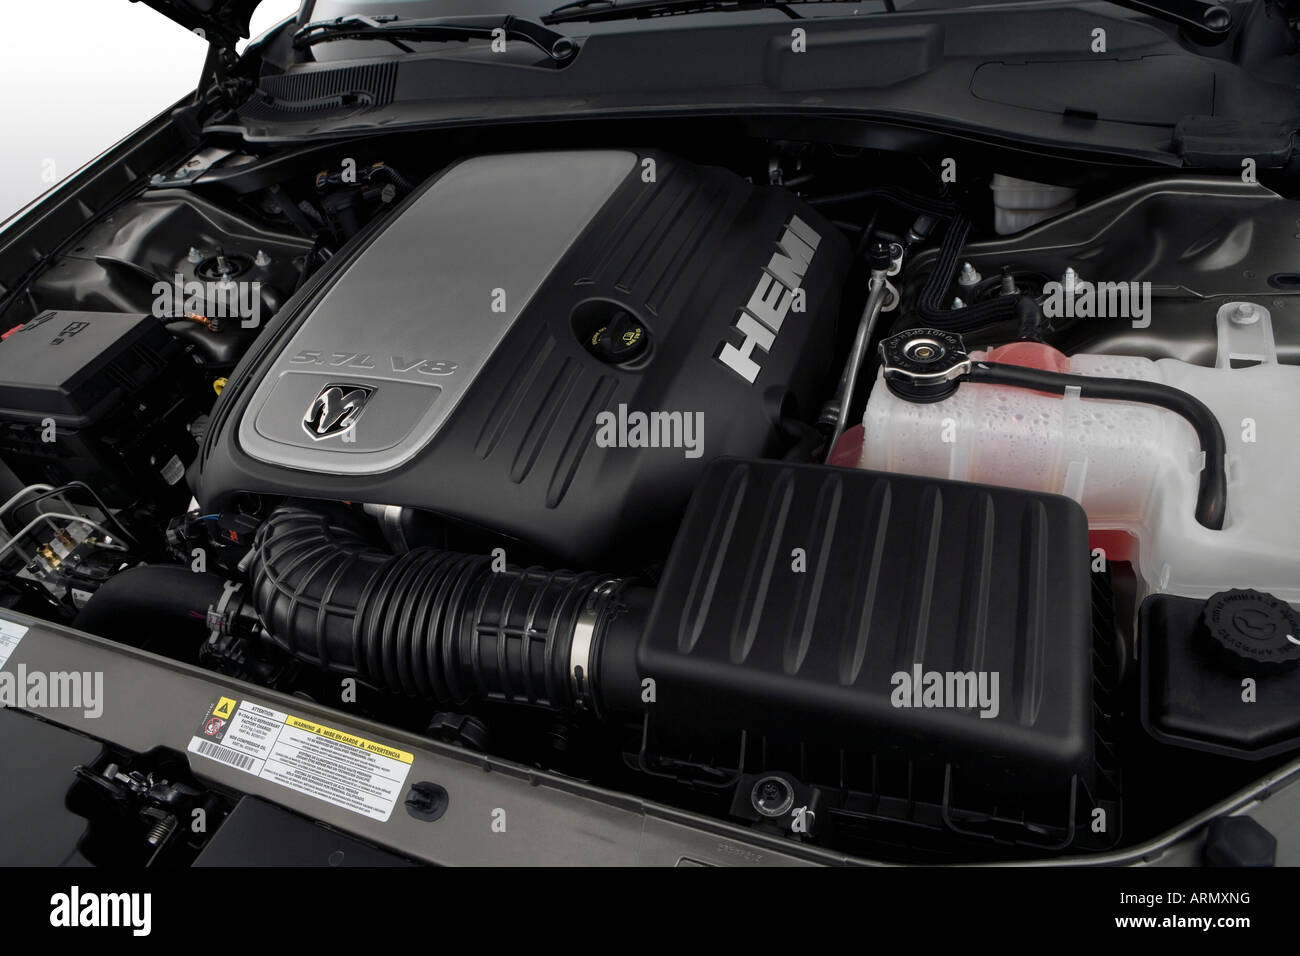 2008 Charger Rt >> 2008 Dodge Charger R T In Gray Engine Stock Photo